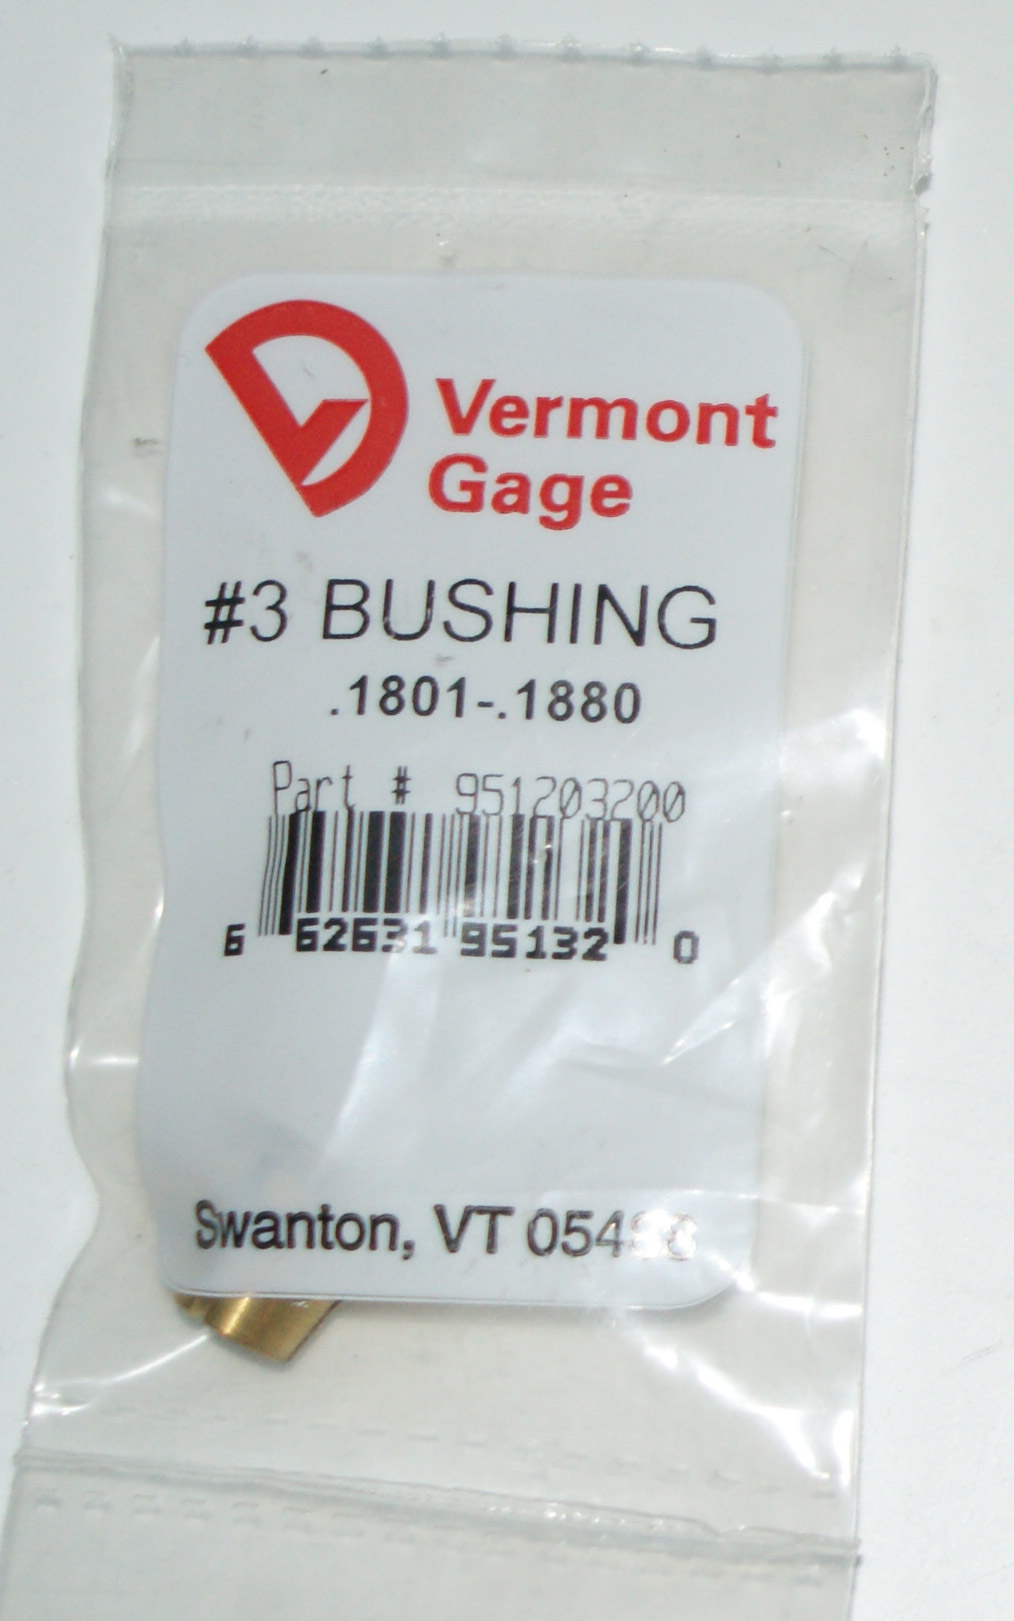 "Vermont Gage .1801-.1880"" #3 Bushing / Collet Pin"